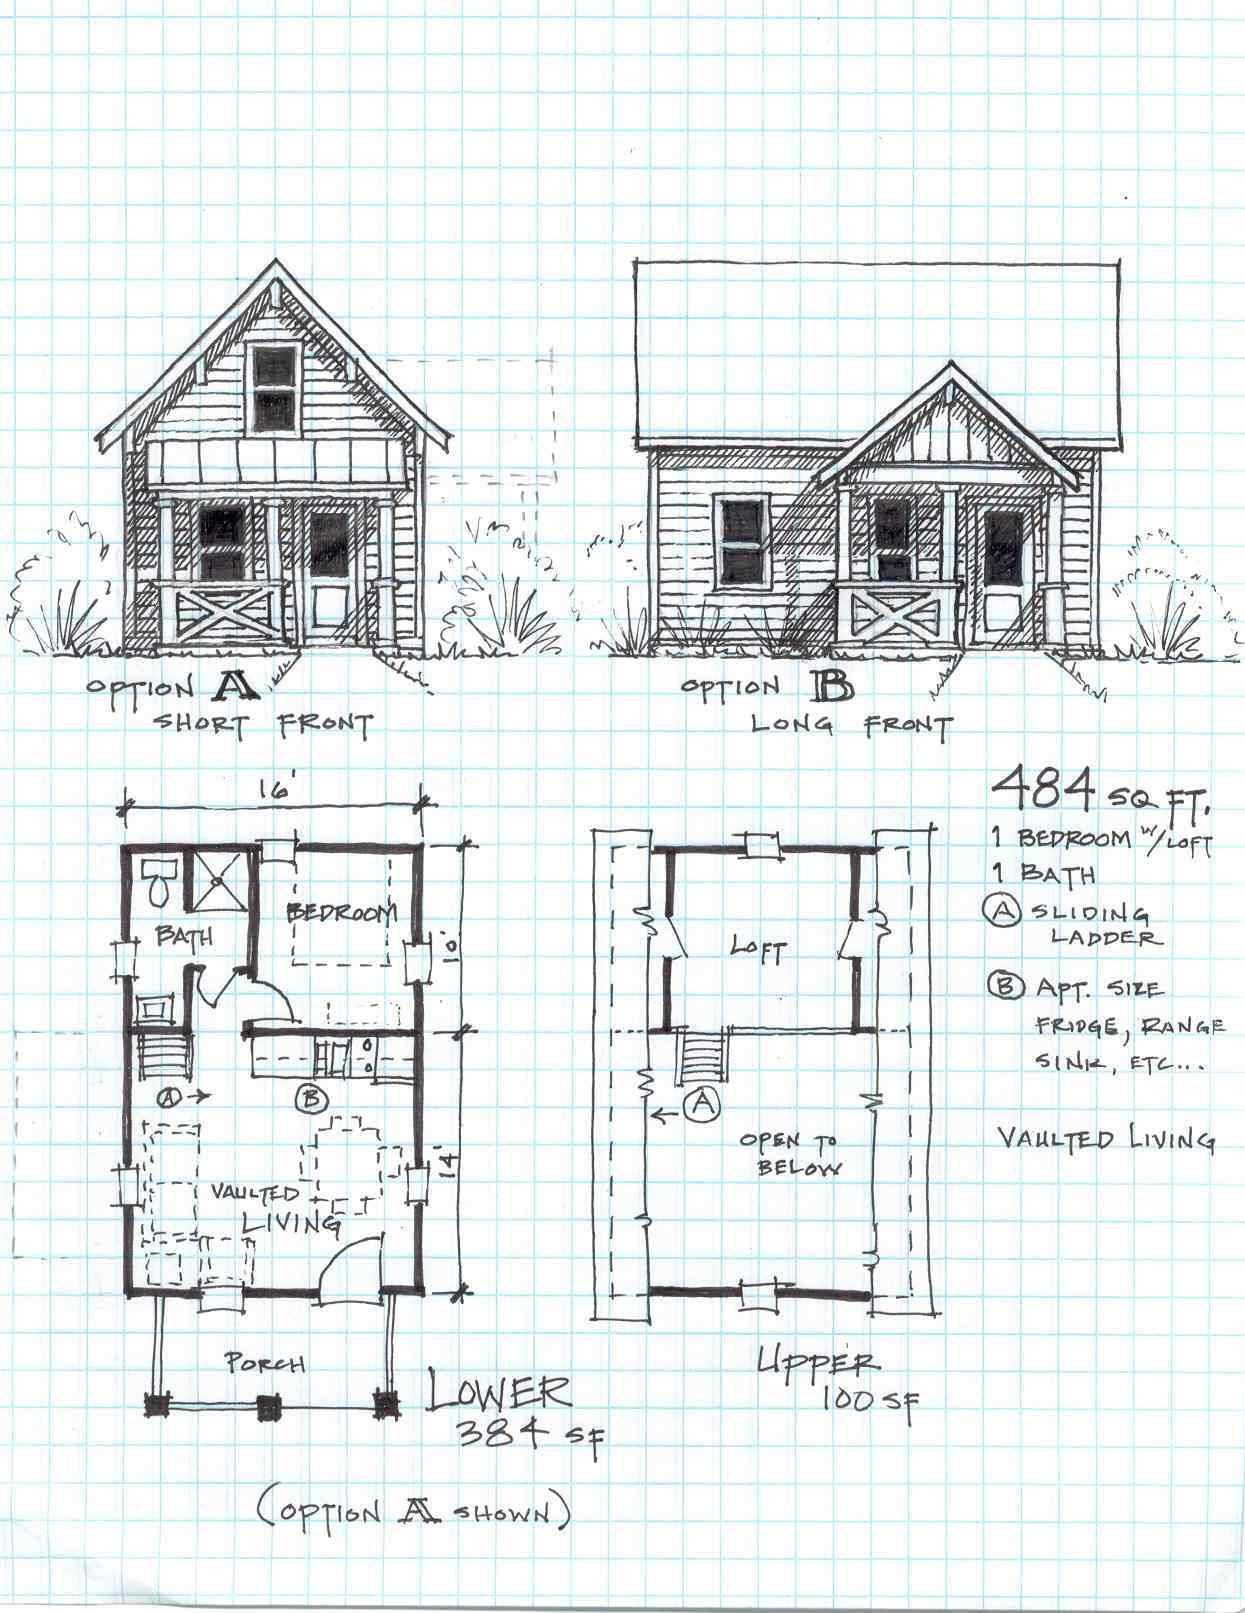 Fine Mistys 400 Sq Ft 16X25 Solar Off Grid Small House Solar Window Largest Home Design Picture Inspirations Pitcheantrous